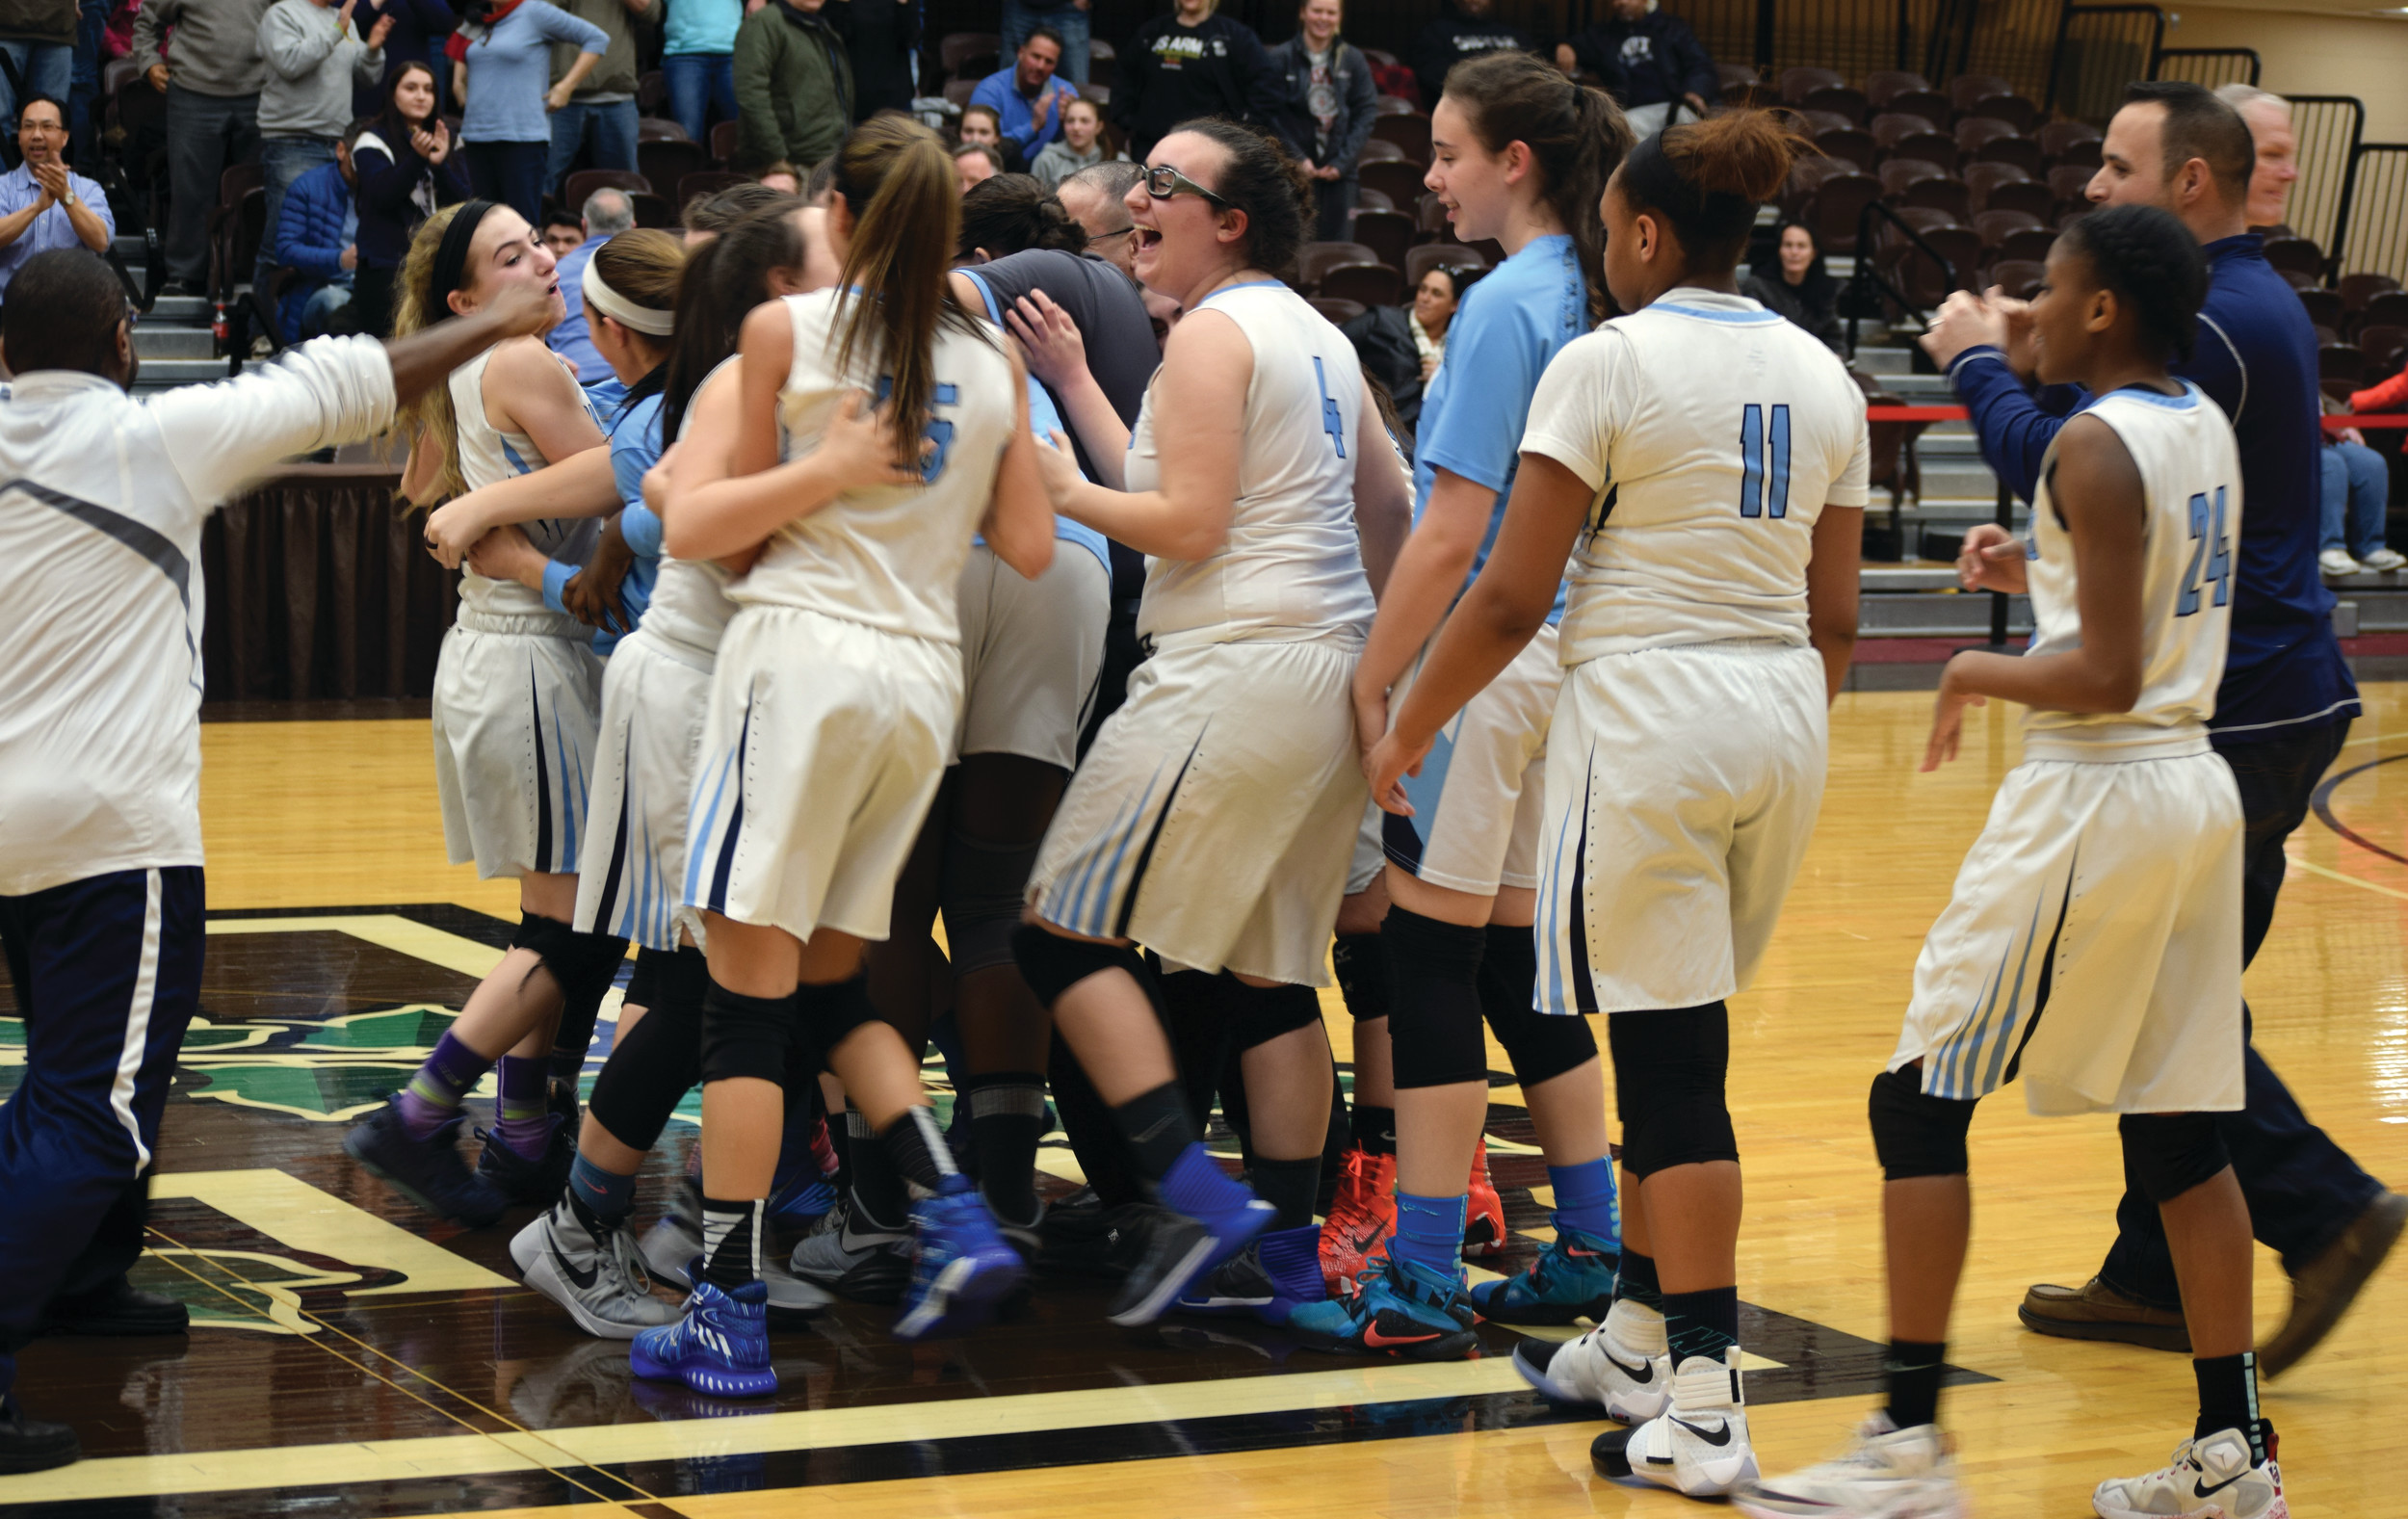 ADVANCING: The Johnston girls' basketball team celebrates at center court at Brown University after holding off Cranston East by two points in the Elite 8 on Saturday.